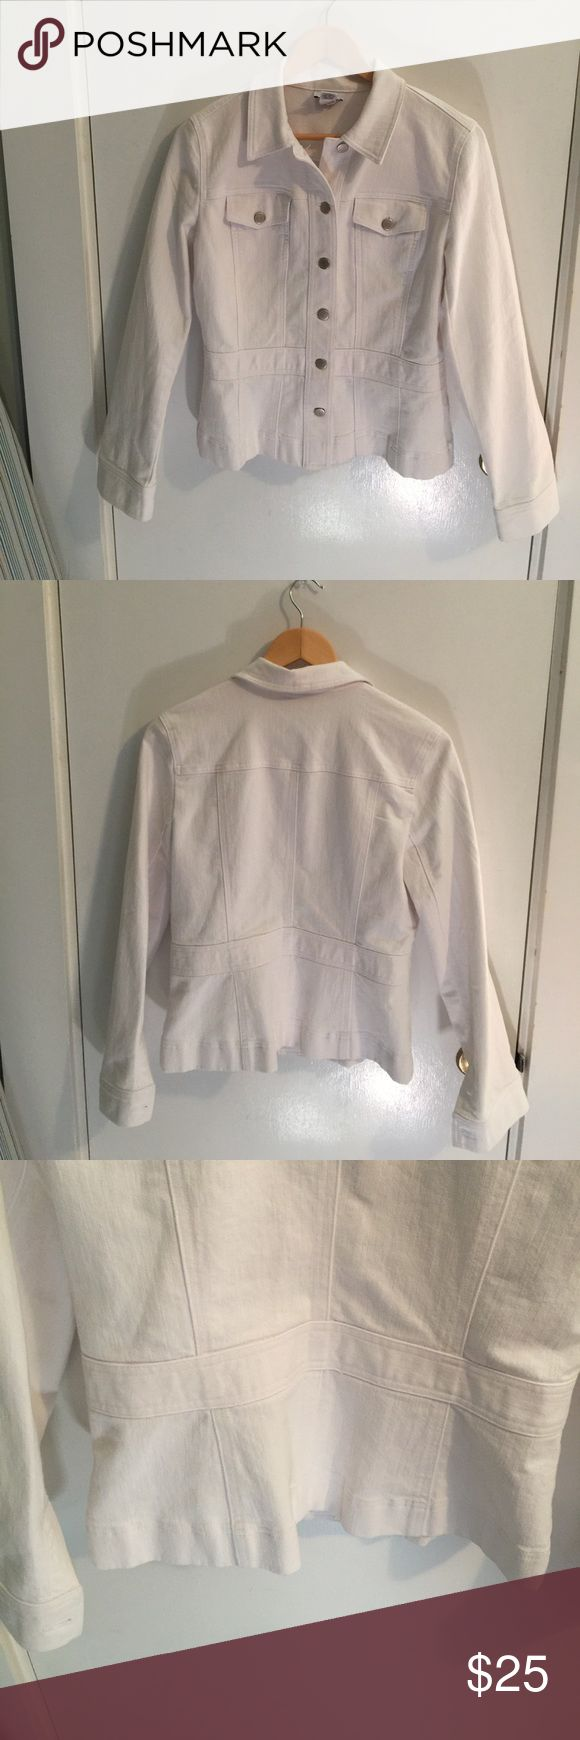 White Anne Taylor loft jean jacket• stretch denim! White stretch denounced jack from Anne Taylor loft. Great condition. Comes from a smoke free and pet free home. Great for spring and summer! Ann Taylor Jackets & Coats Jean Jackets